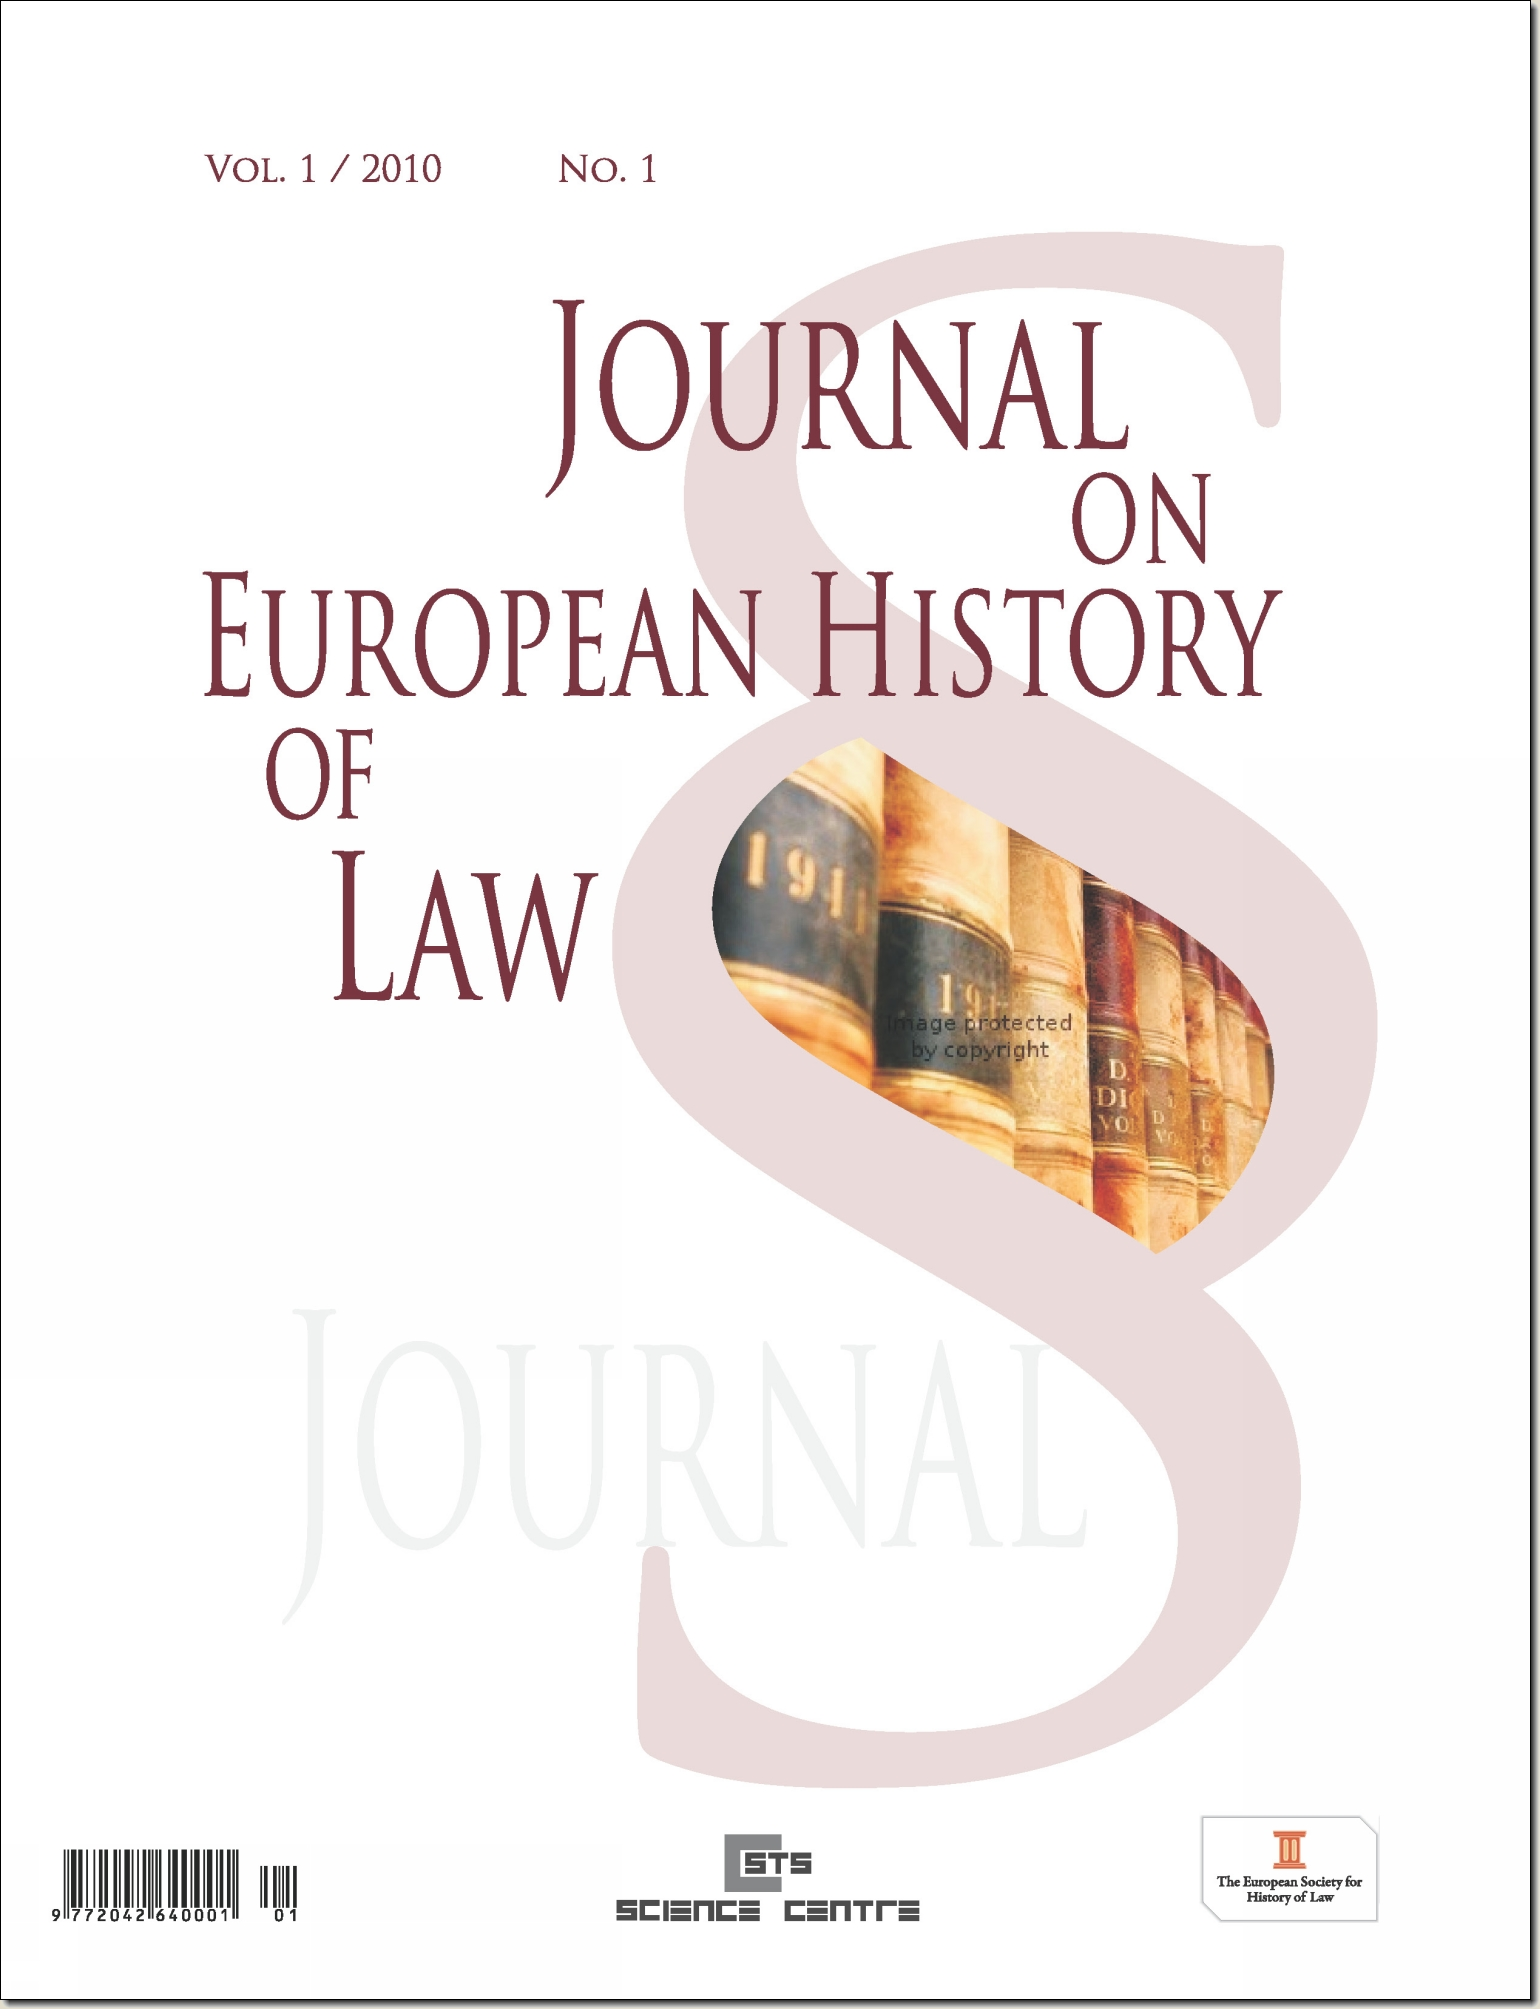 014 Research Paper 20th Century European History Topics Journal On Of Law Cover 1 Magnificent Full